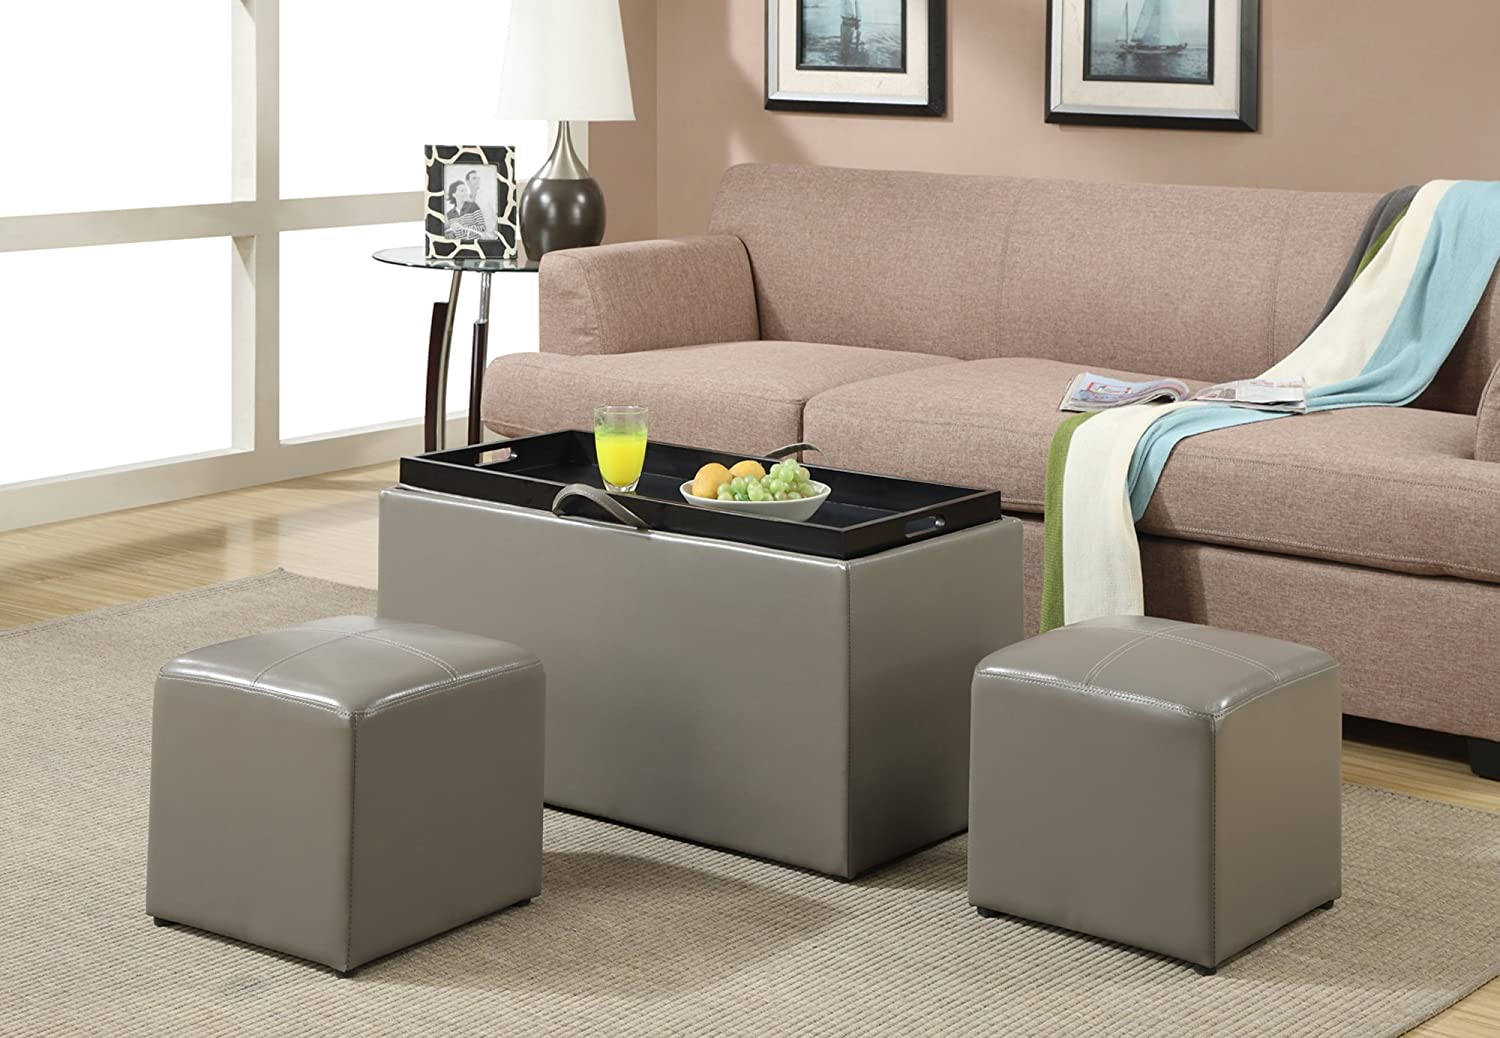 amazoncom convenience concepts designscomfort sheridan faux leather storage bench with  side ottomans gray kitchen amp dining: storage bench for living room